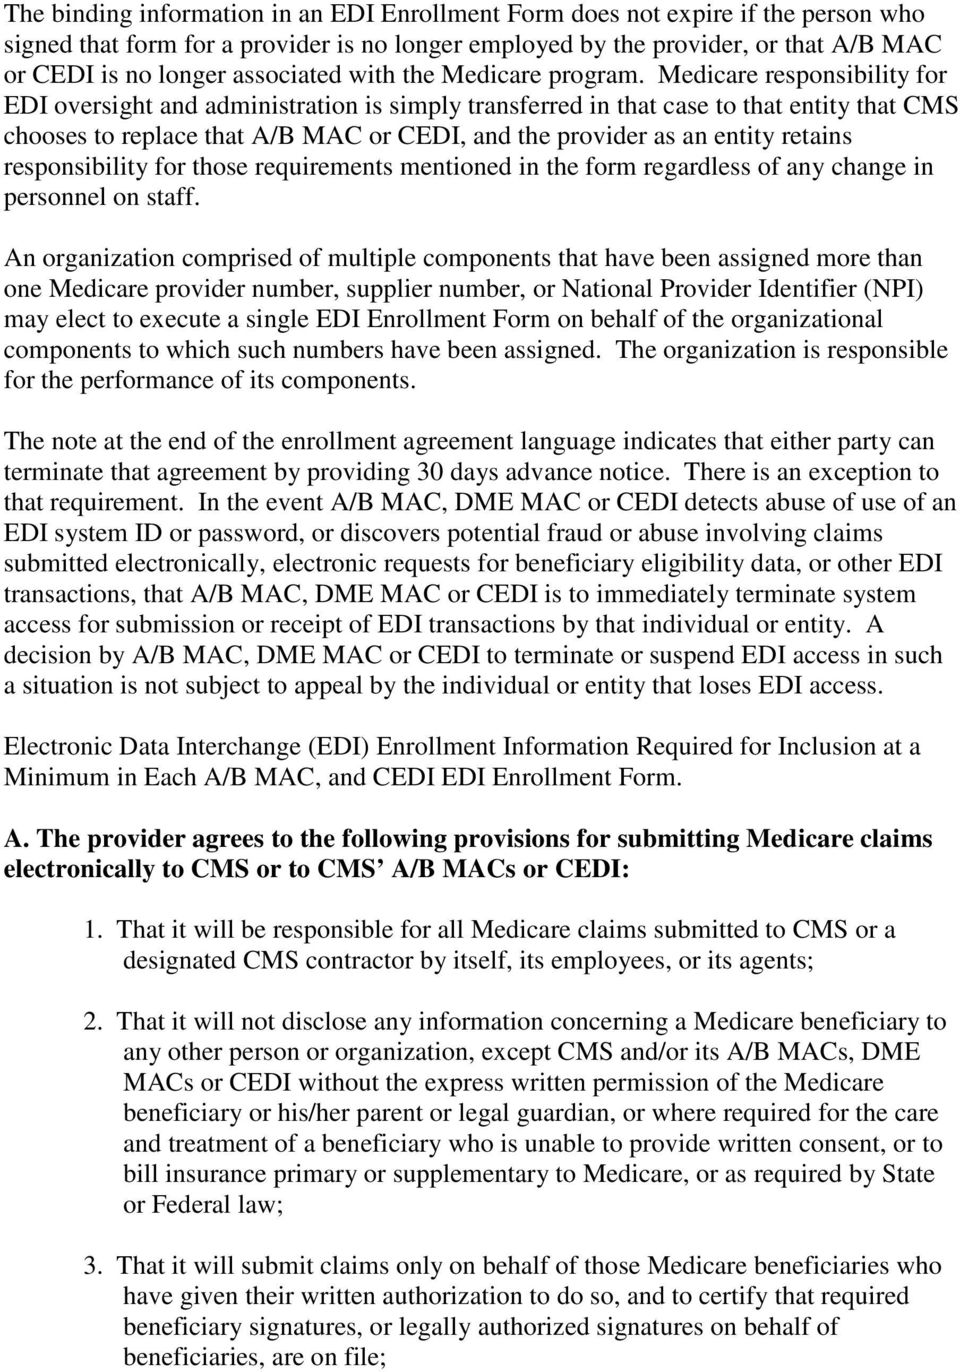 Medicare responsibility for EDI oversight and administration is simply transferred in that case to that entity that CMS chooses to replace that A/B MAC or CEDI, and the provider as an entity retains